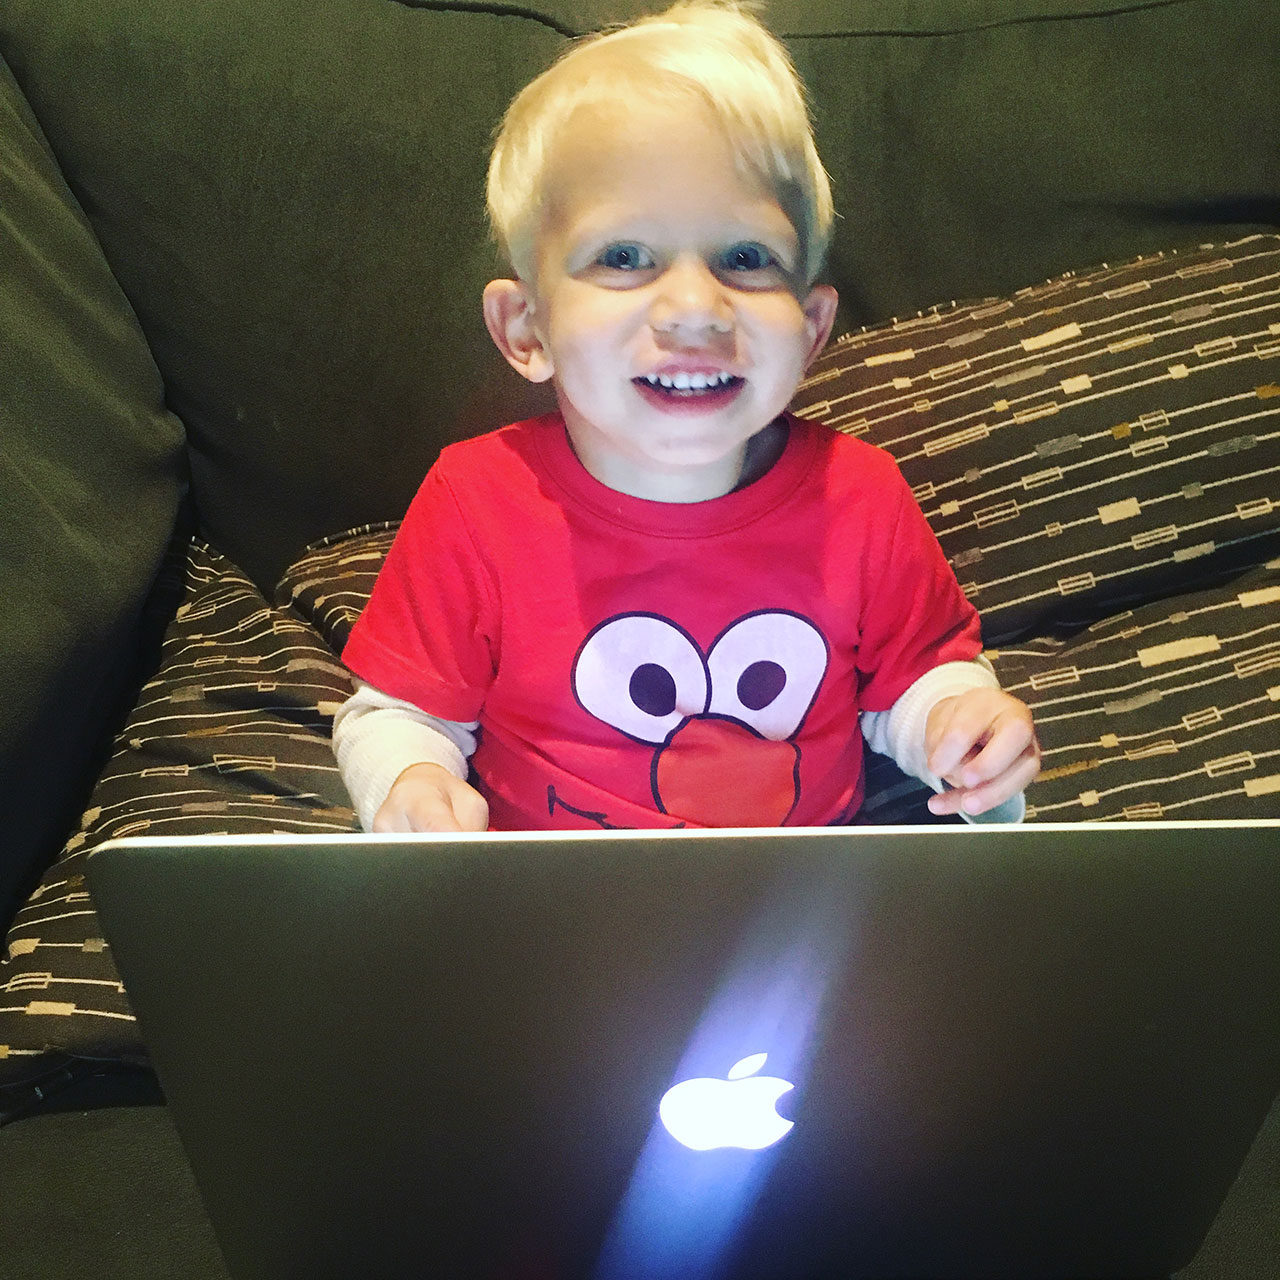 cute baby two year old using macbook pro laptop